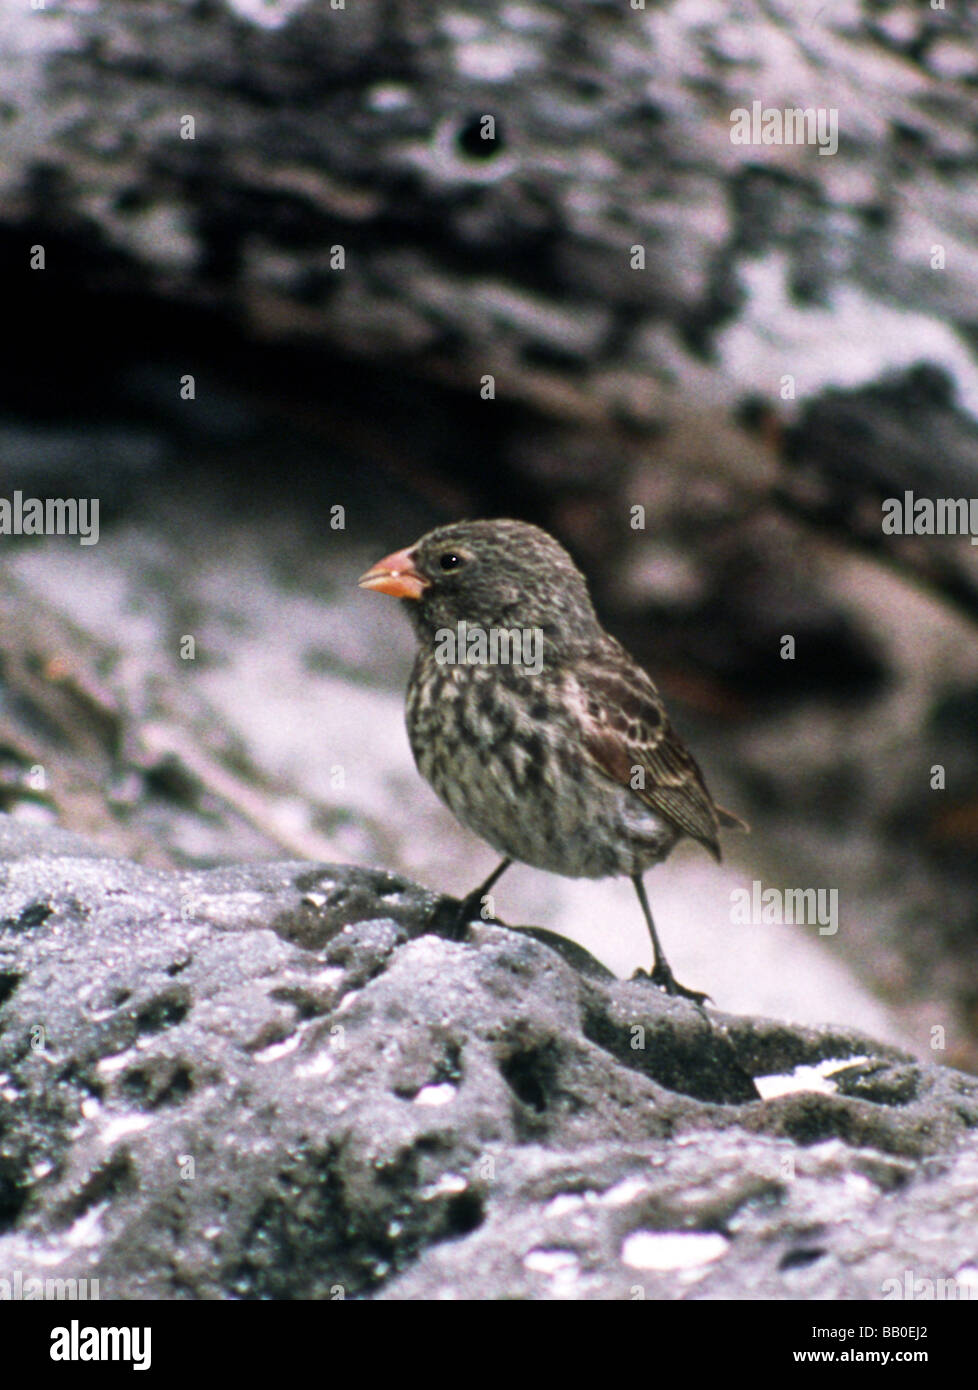 Galapagos Islands. Small Ground Finch 'Geospiza fuliginosa' on         Island. - Stock Image